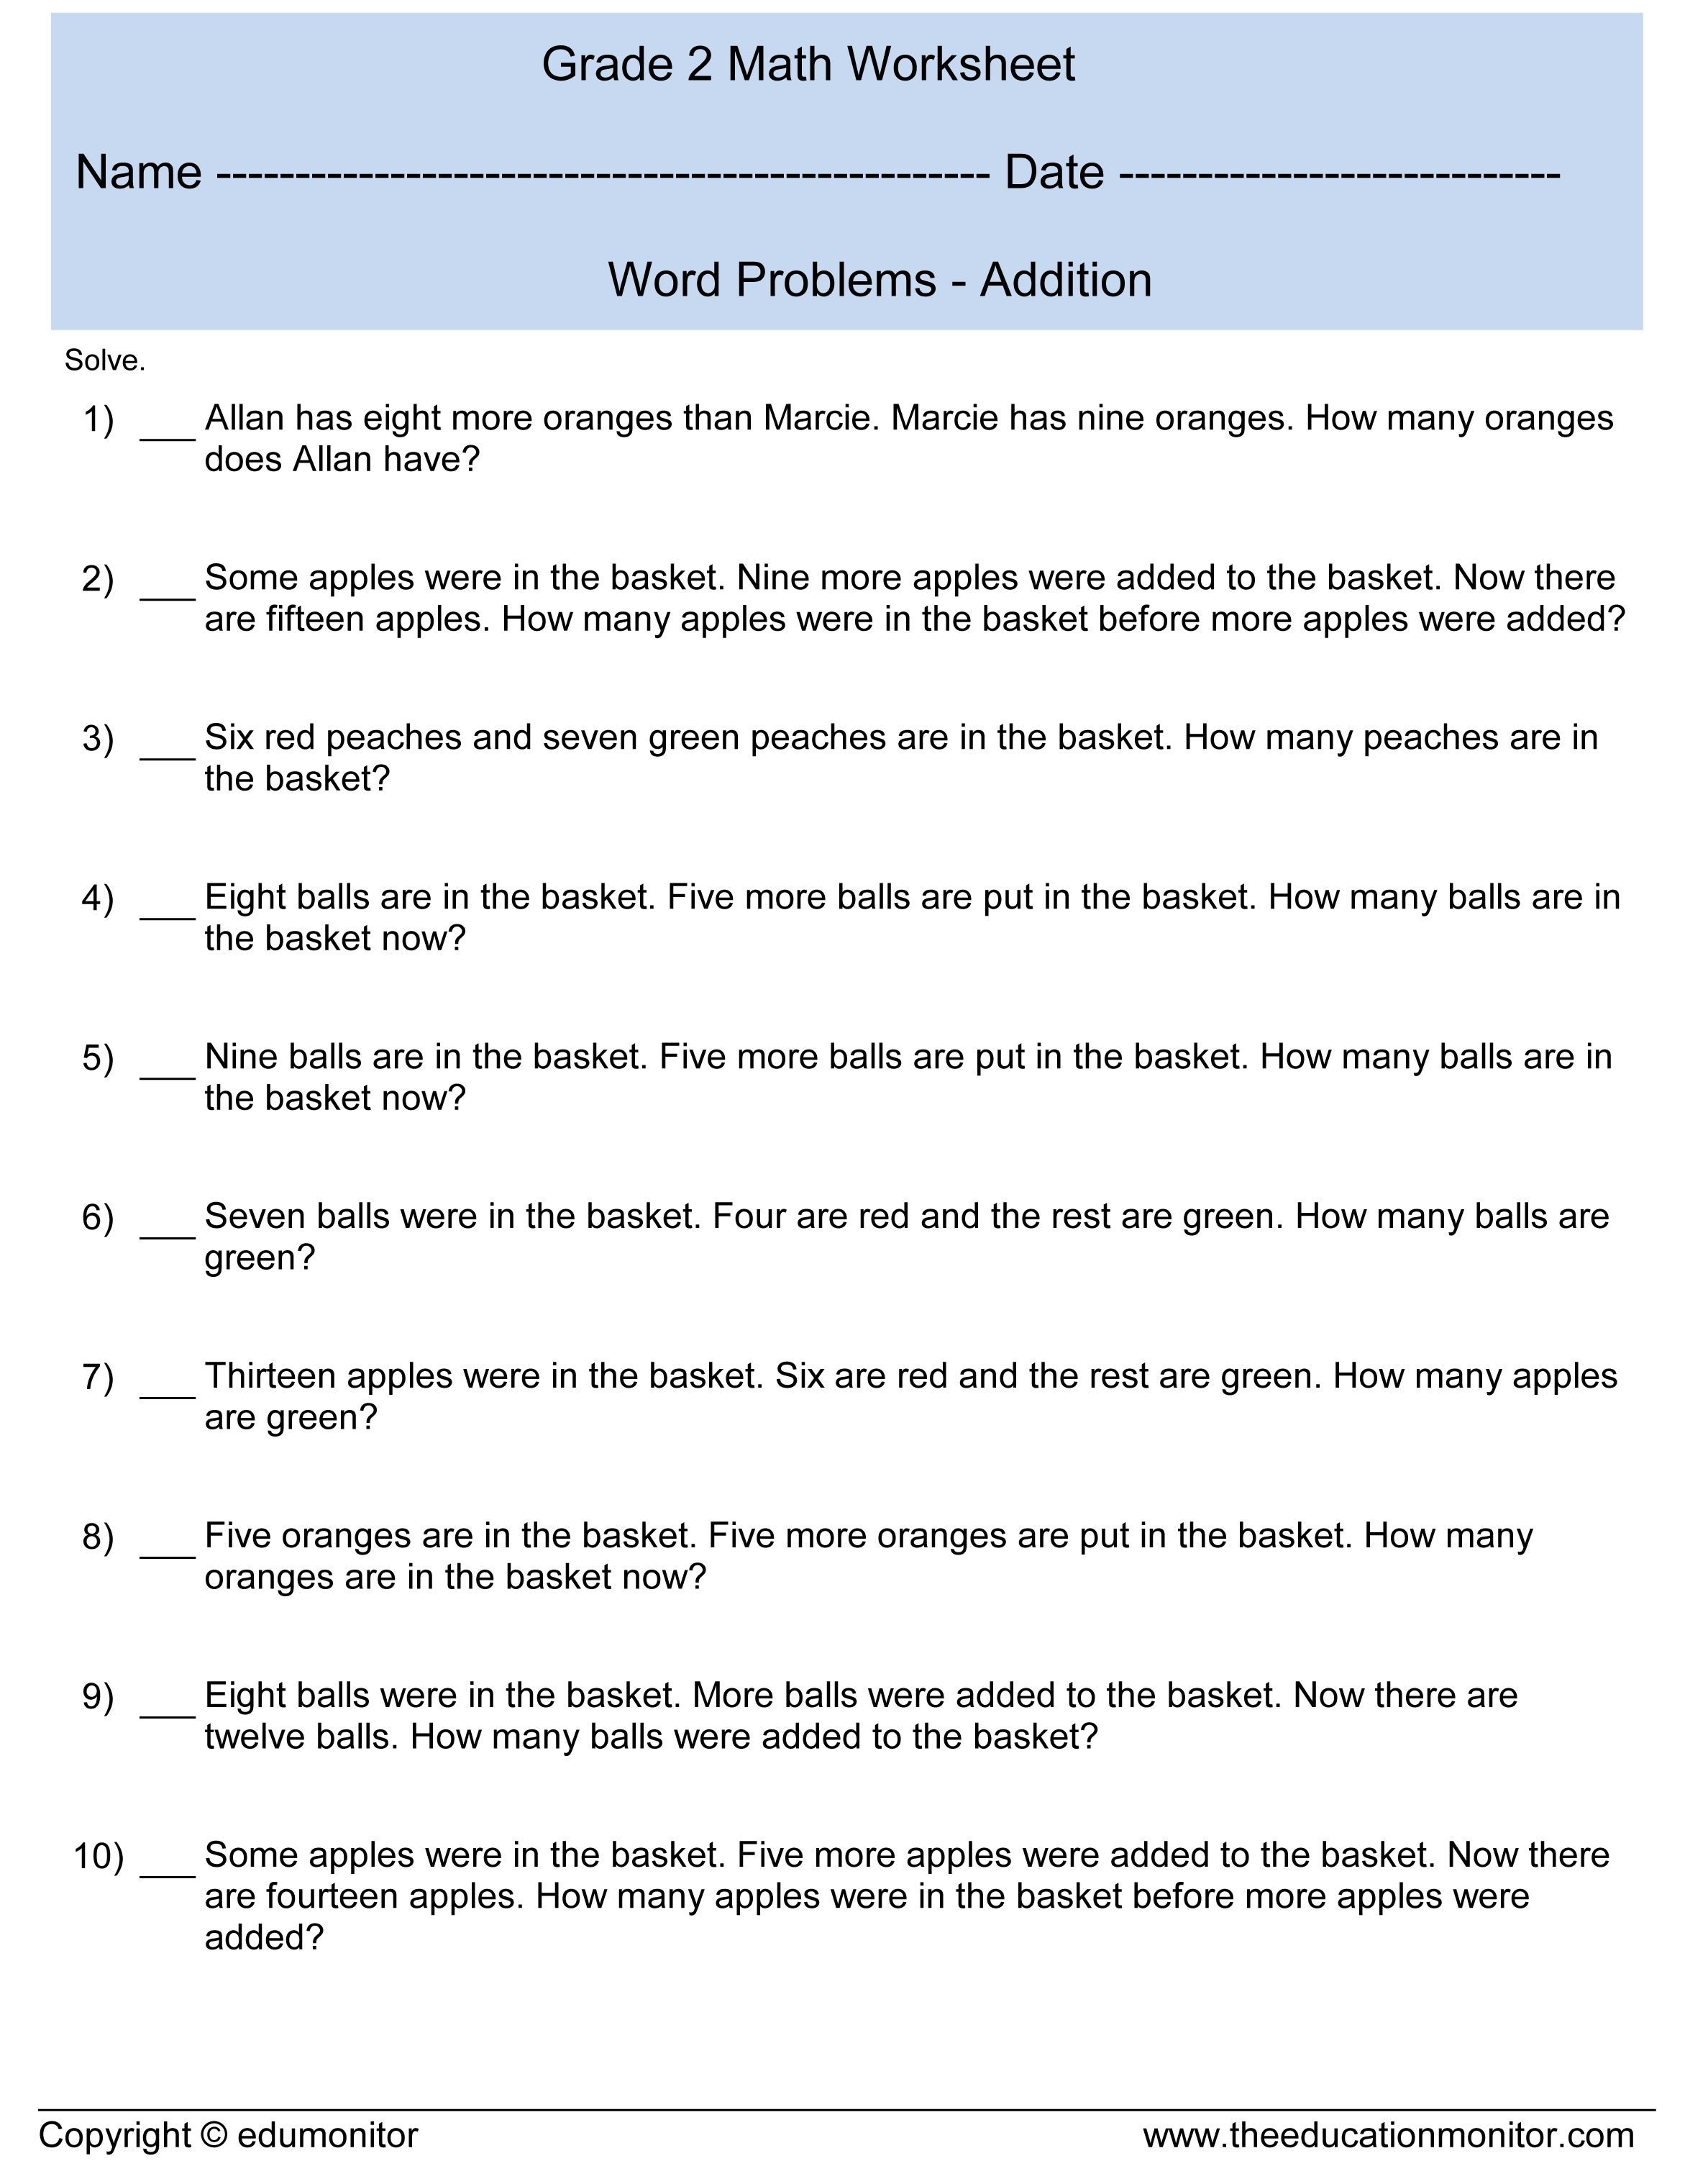 Worksheets For 2nd Grade Kids Theeducationmonitor